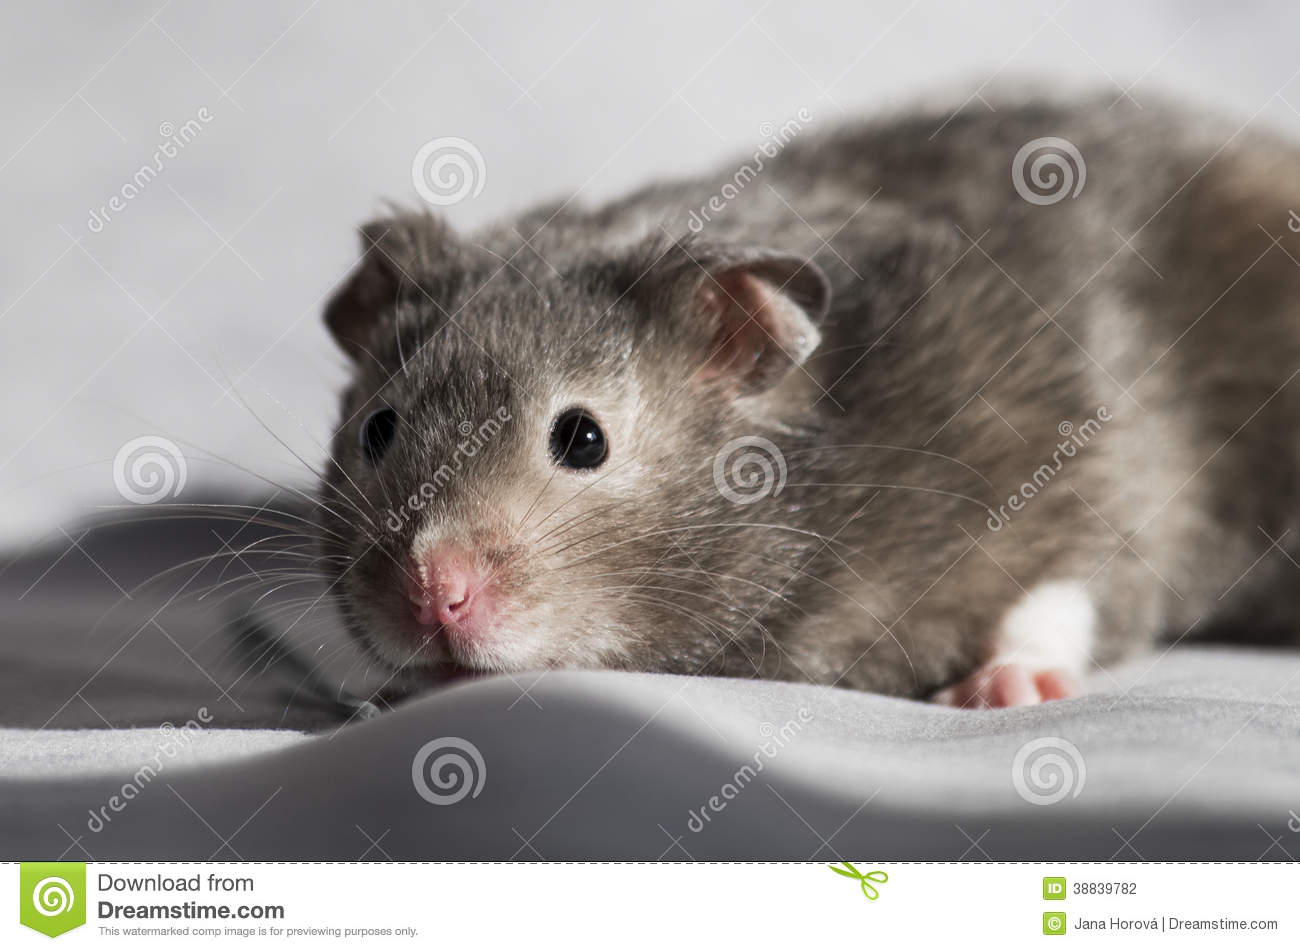 Hamster stock photo  Image of smiling, natural, color - 38839782